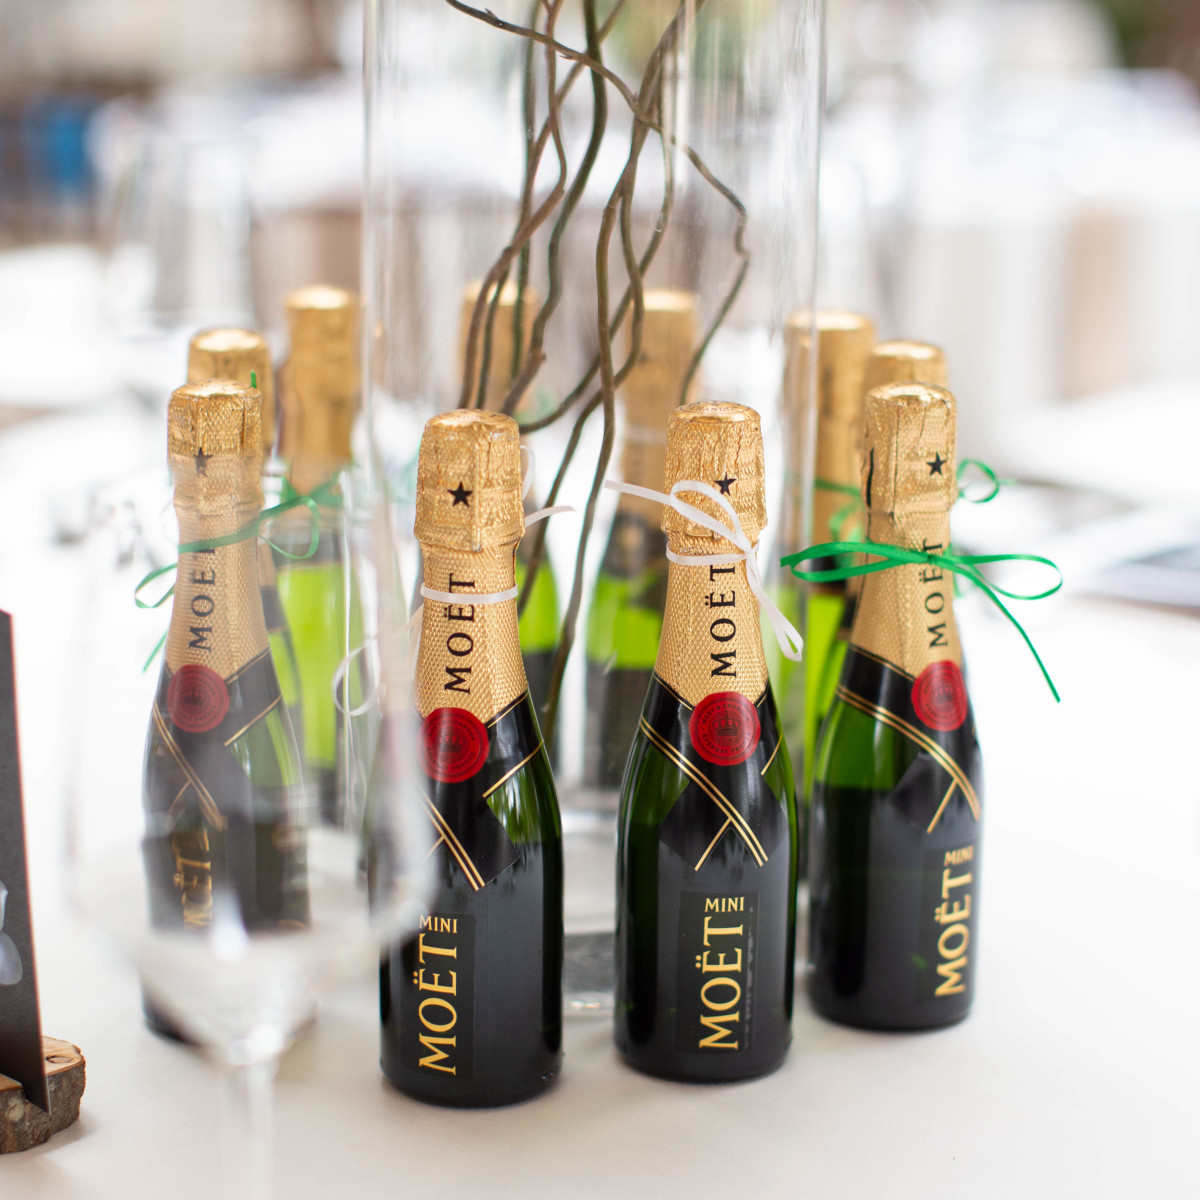 Moet mini champagne bottles